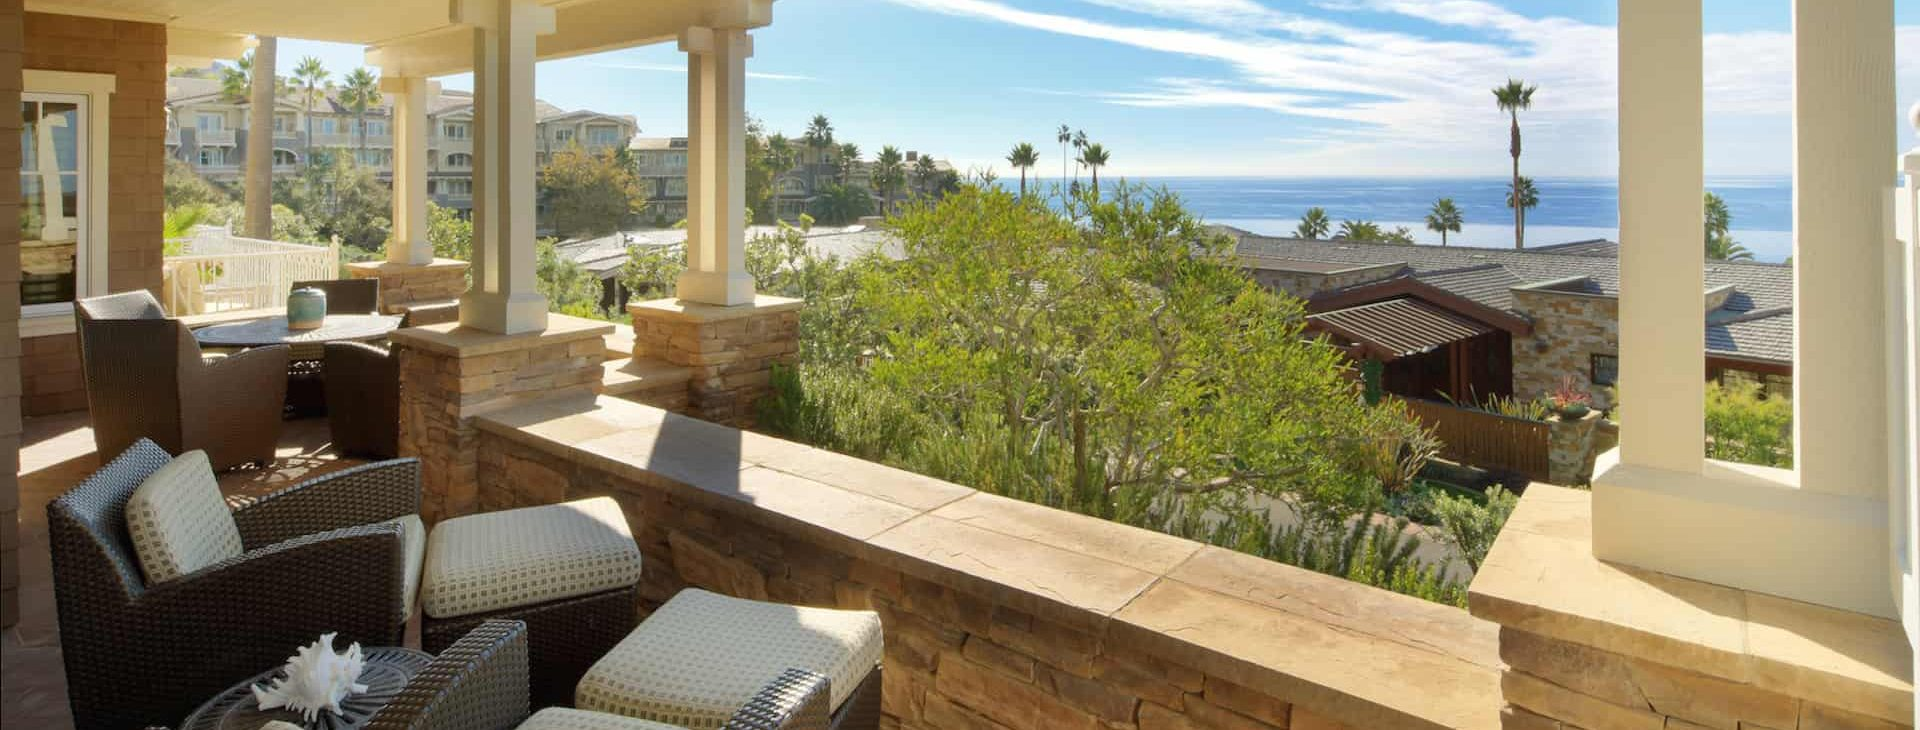 You are viewing the for at 7 montage way with the mls® lg20243851 on previewochomes.com. Laguna Beach Villas Resort Residences Montage Laguna Beach